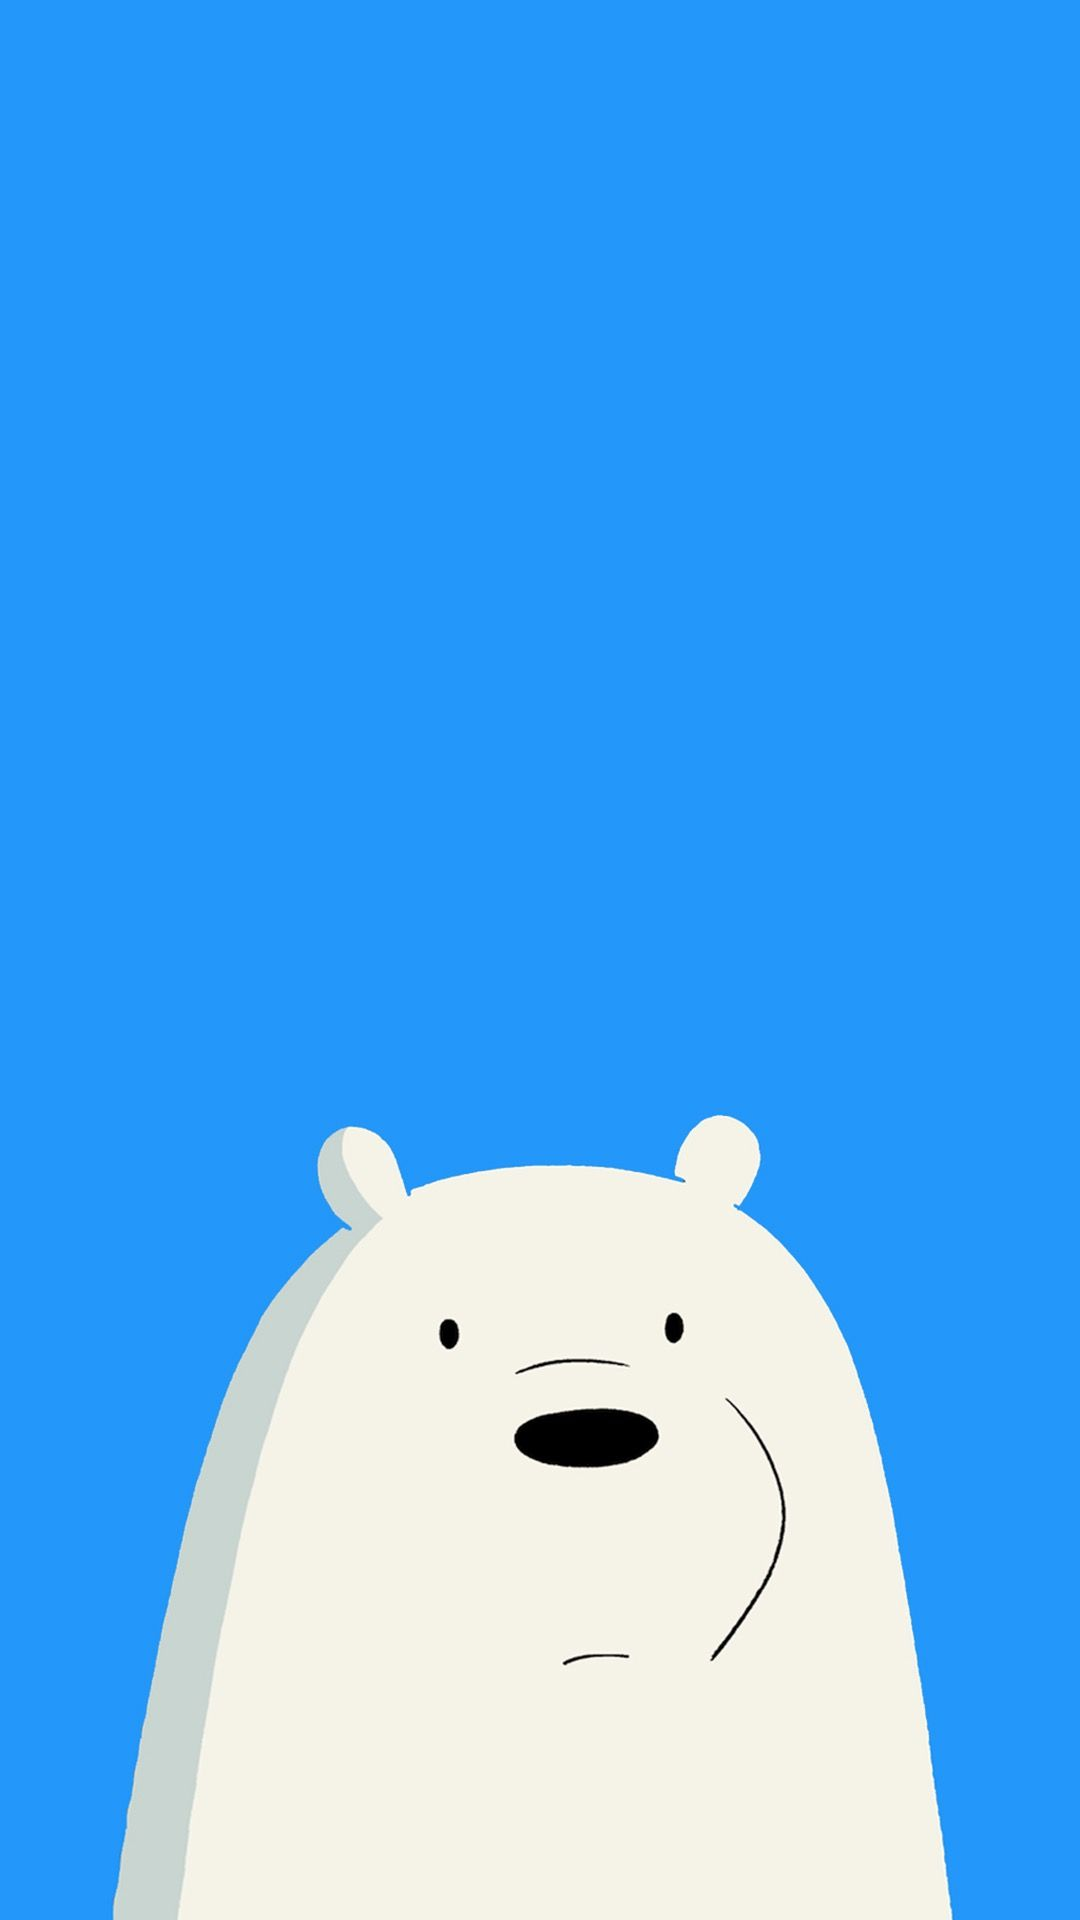 Pin by Sarah L Welch on Wallpaper phone | Ice bear we bare ...